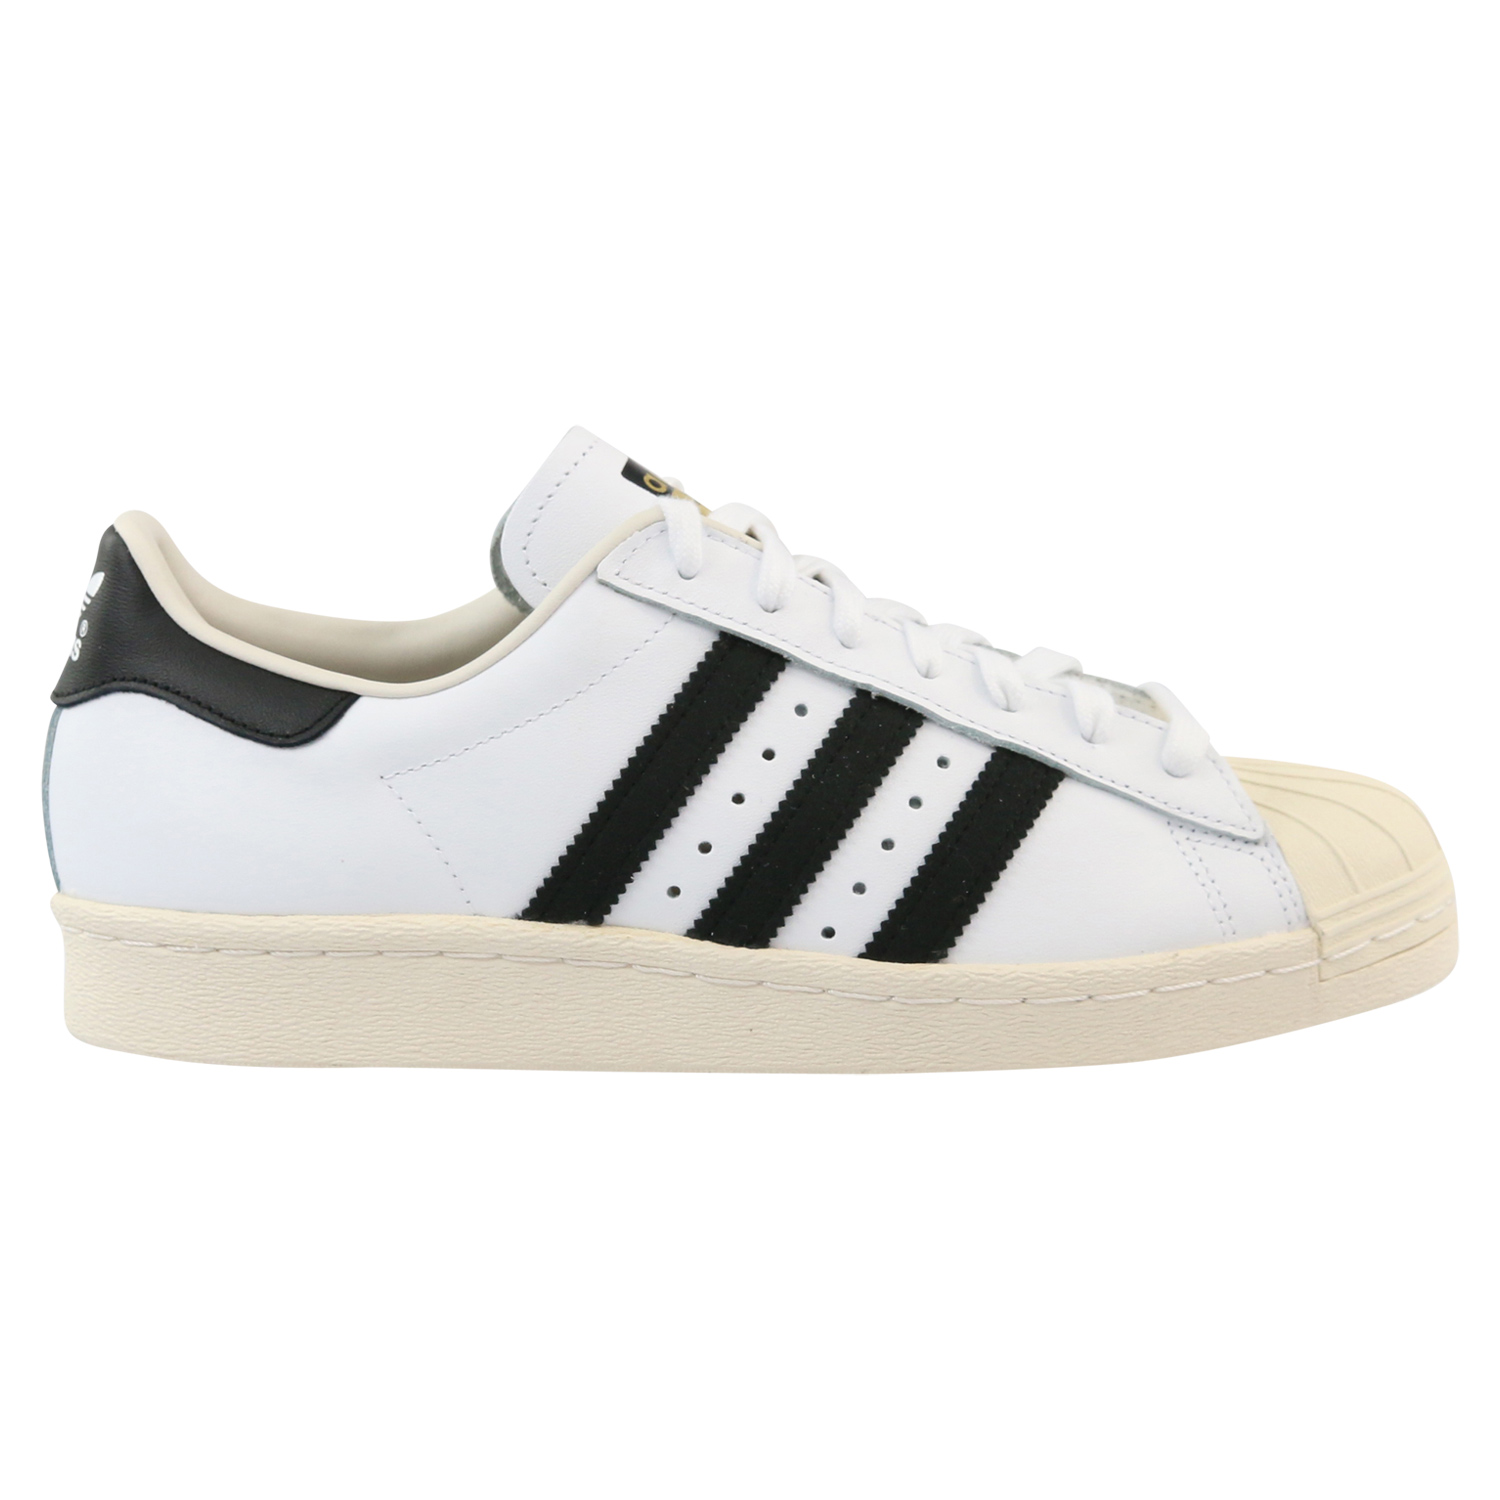 Adidas Originals Turnschuhe Superstar Foundation Schuhe Sneaker Turnschuhe Originals Herren Damen 2a2ba3